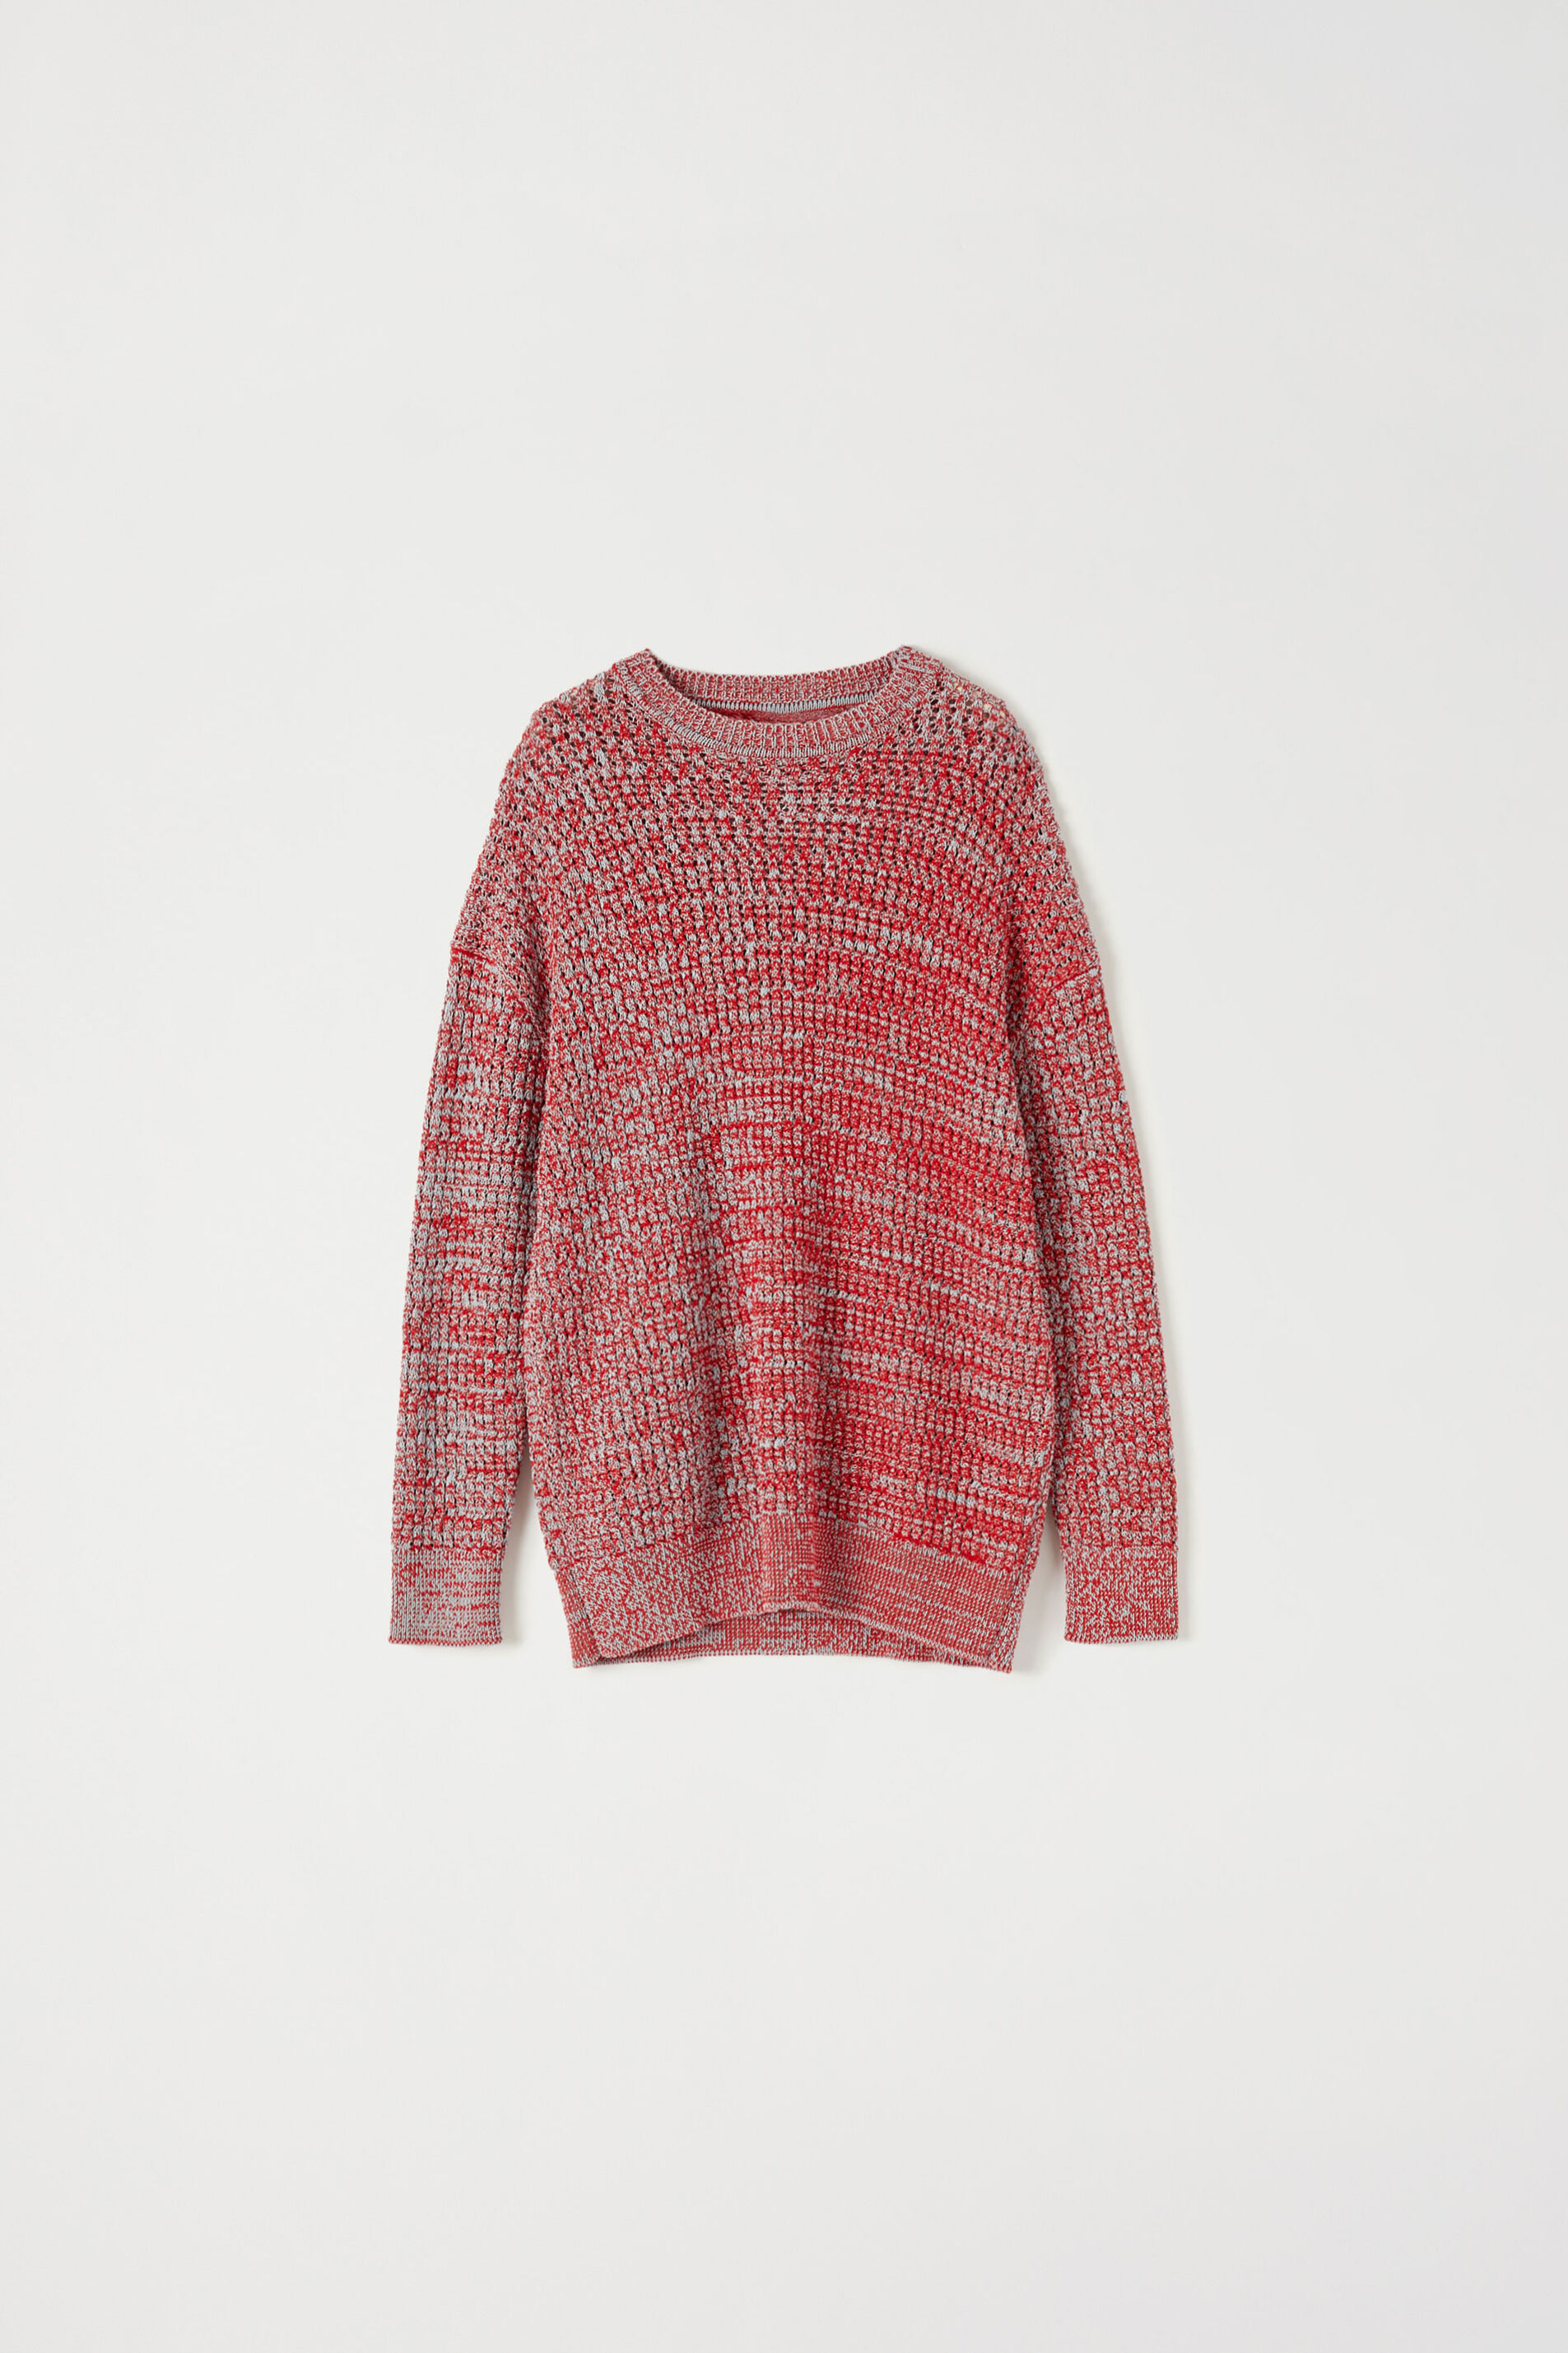 Maglia Oversize, rosso, large